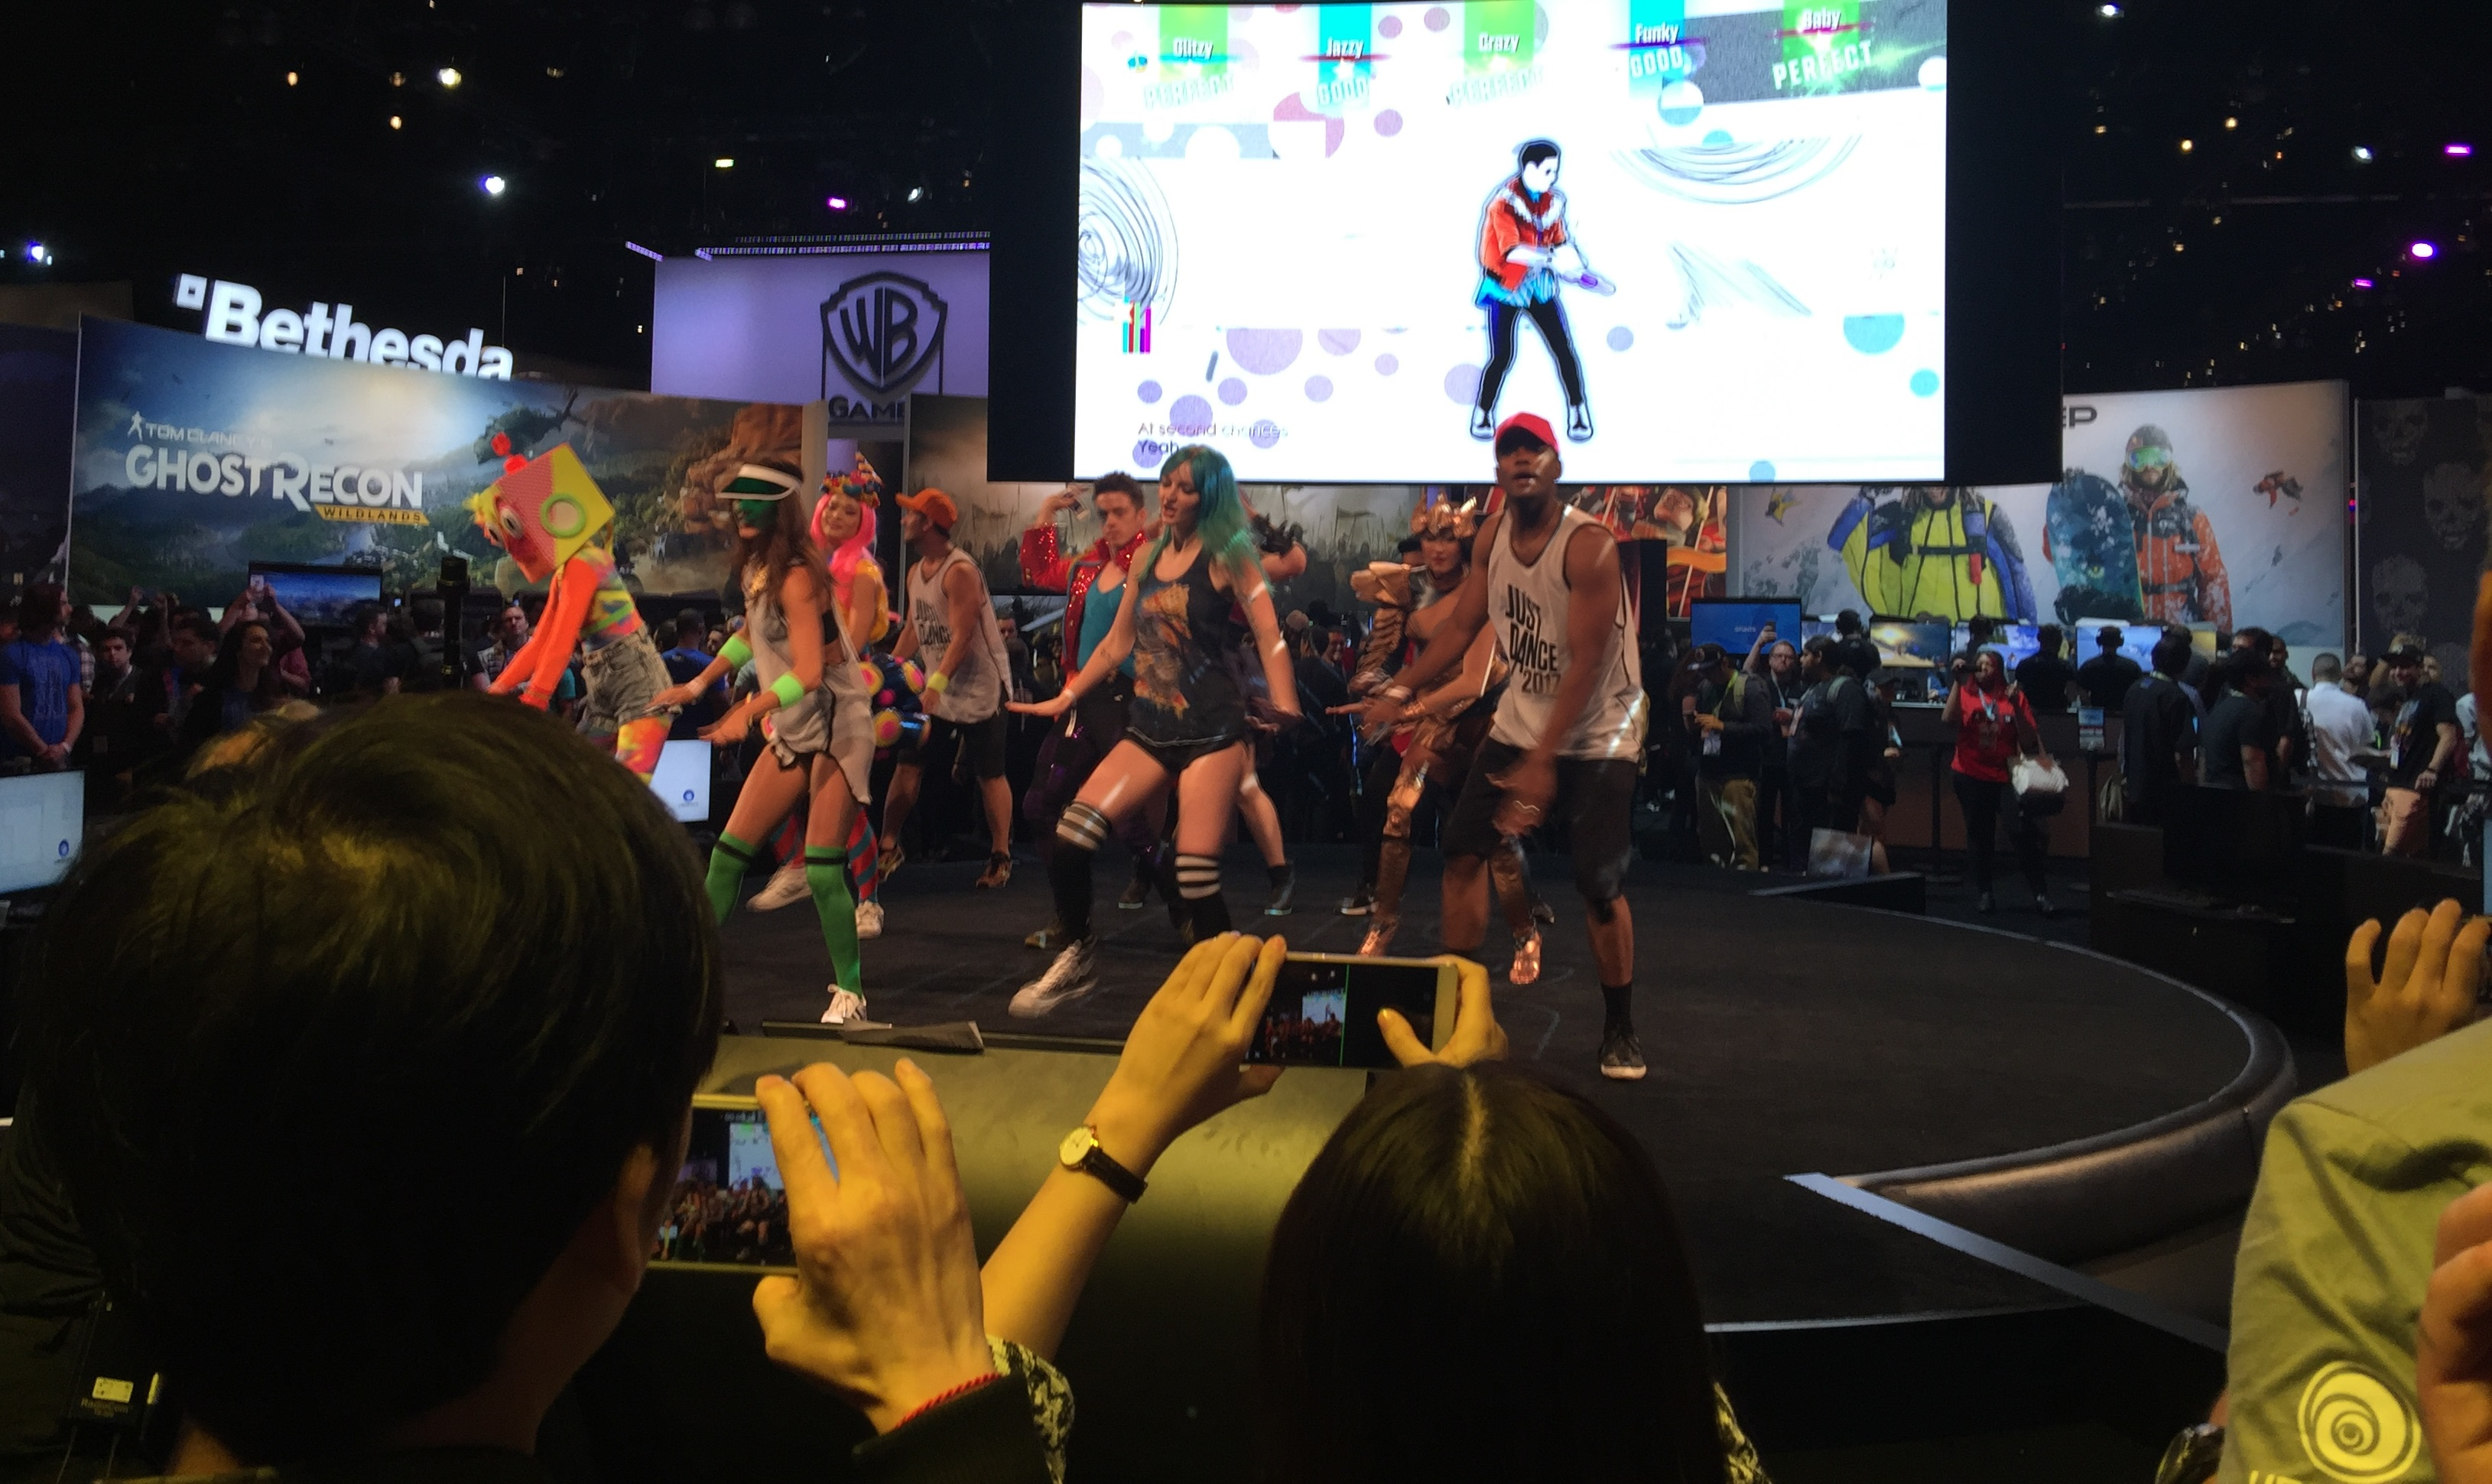 UpadIII2, Electronic Entertainment Expo, Los Angeles Convention Center,2016